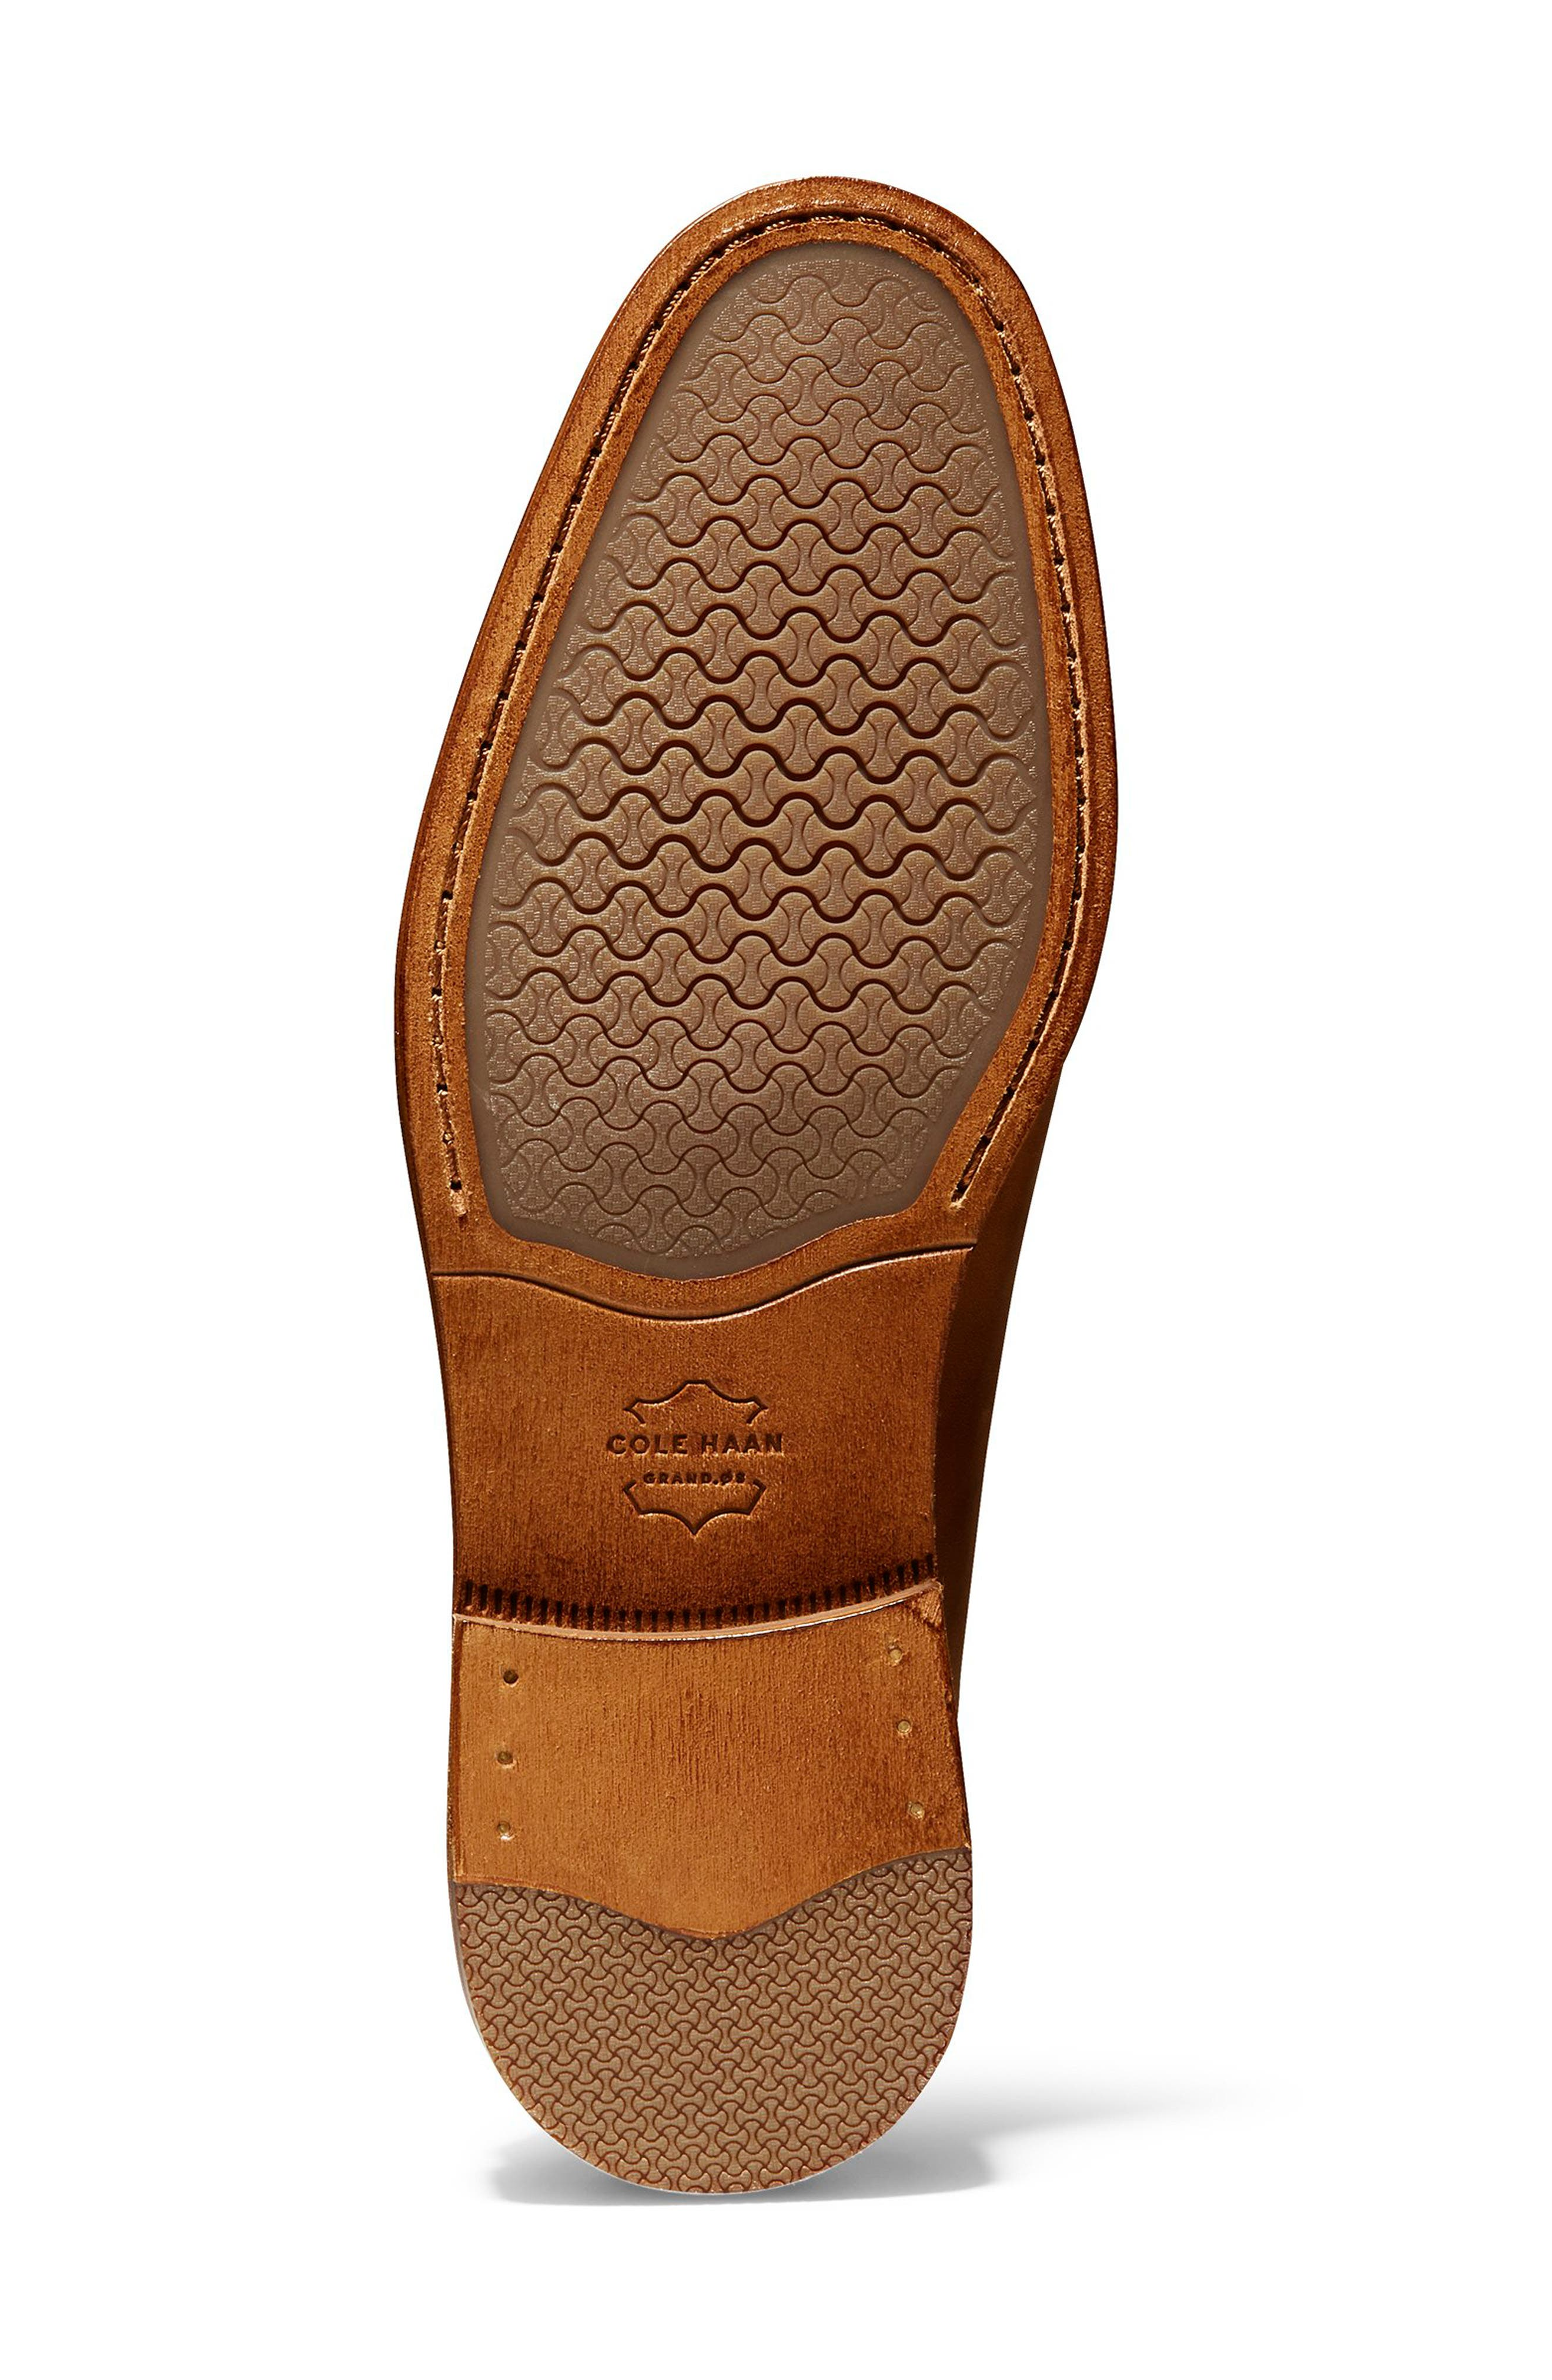 COLE HAAN, Feathercraft Grand Venetian Loafer, Alternate thumbnail 6, color, BRITISH TAN LEATHER